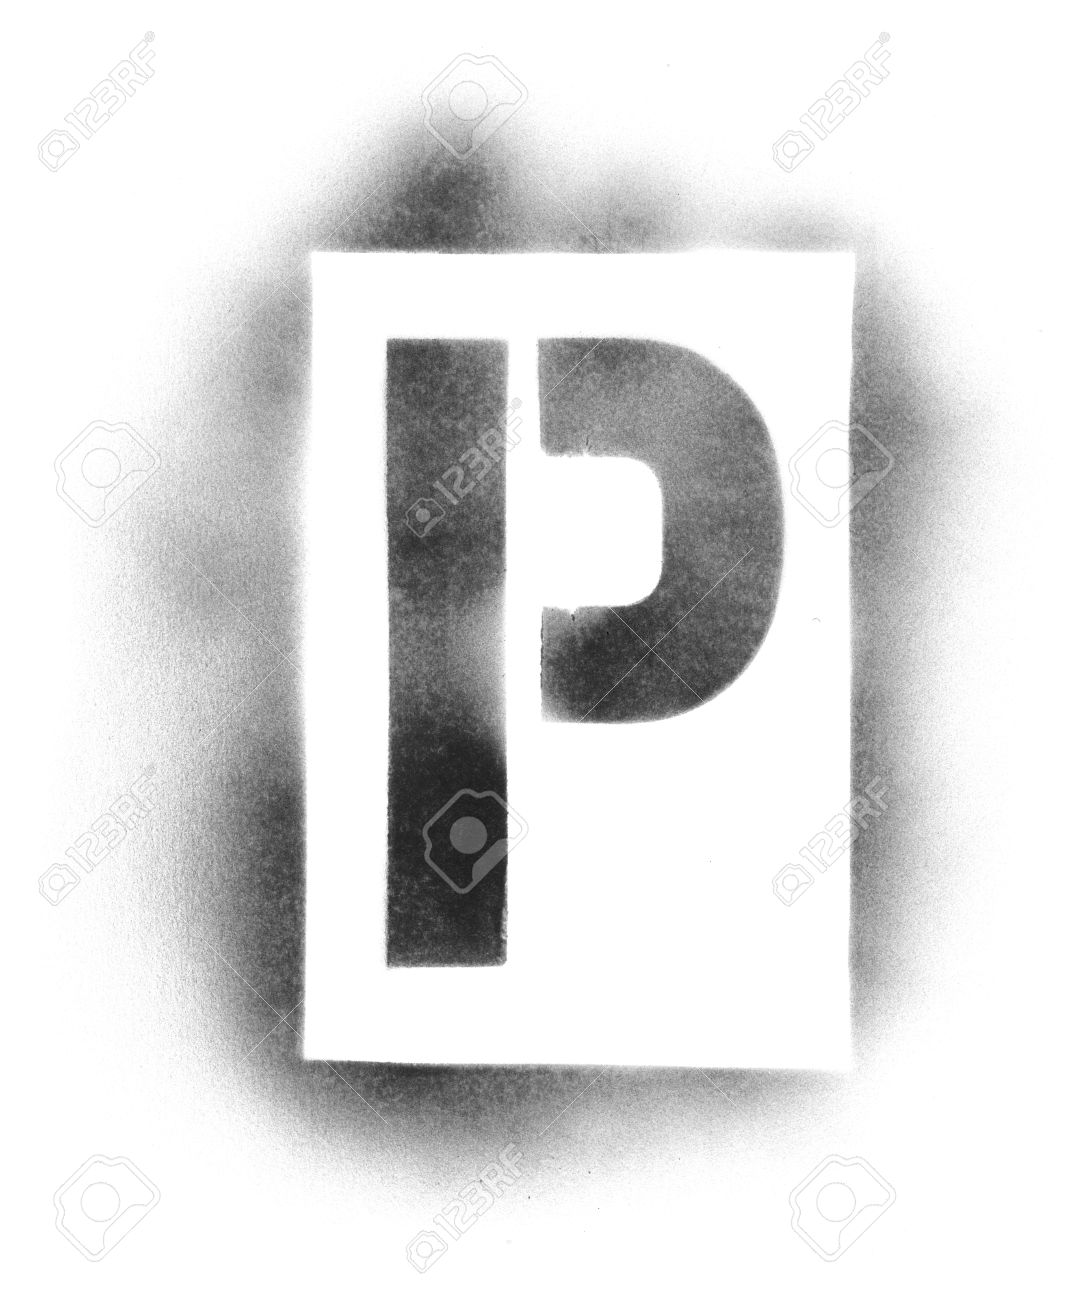 stencil letters in spray paint stock photo 5041353